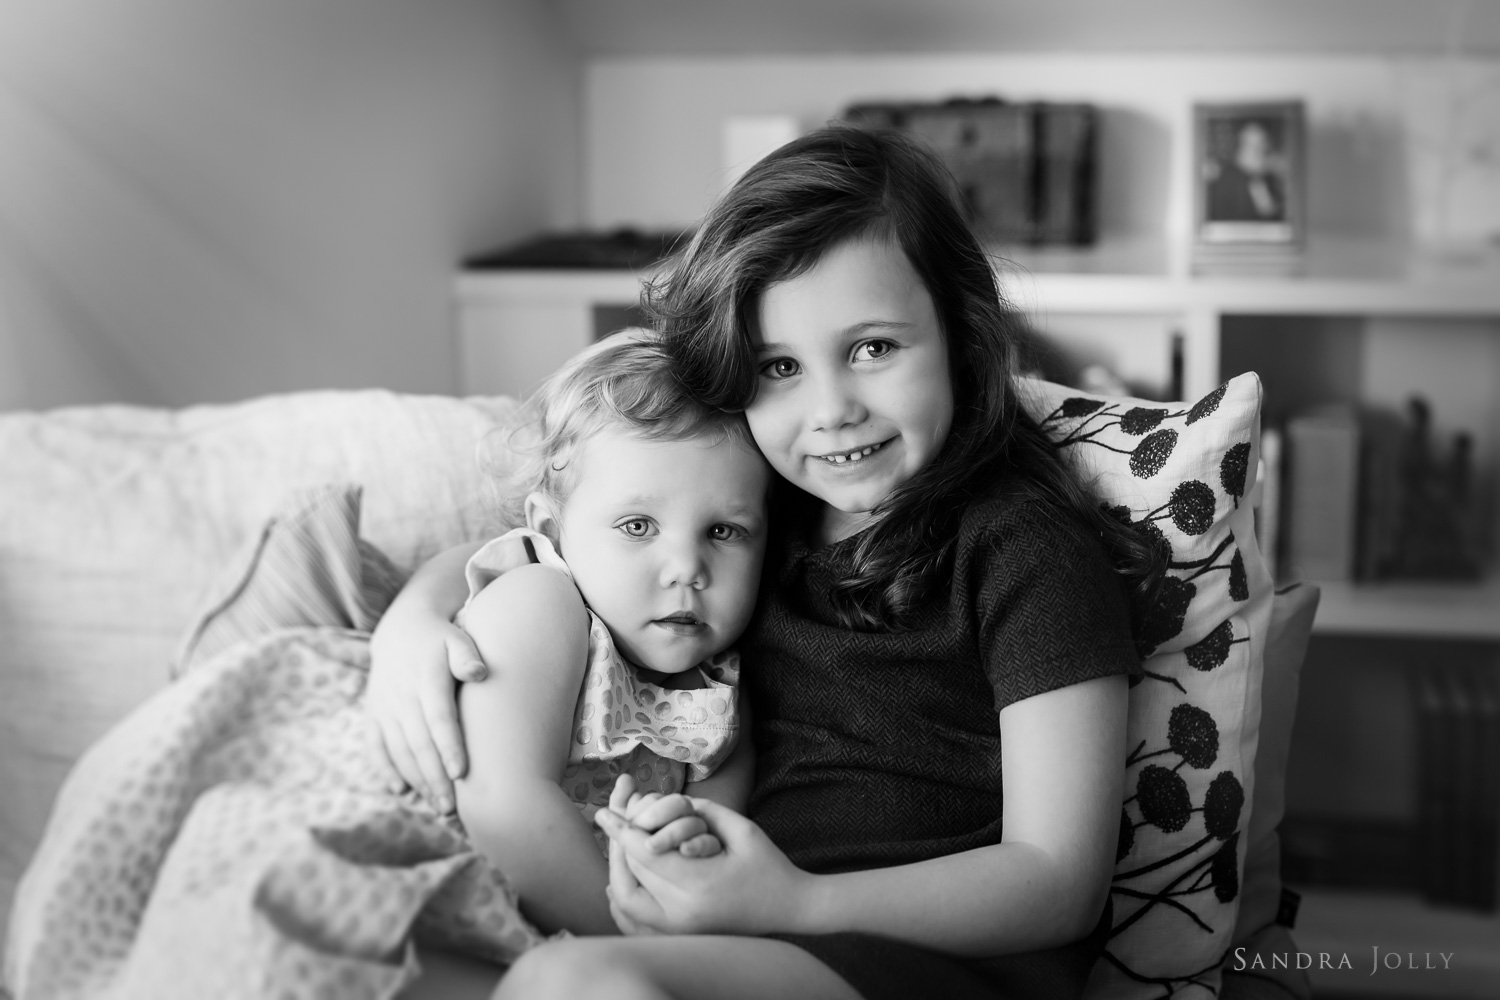 portrait-of-young-sisters-together-by-family-photographer-sandra-jolly.jpg